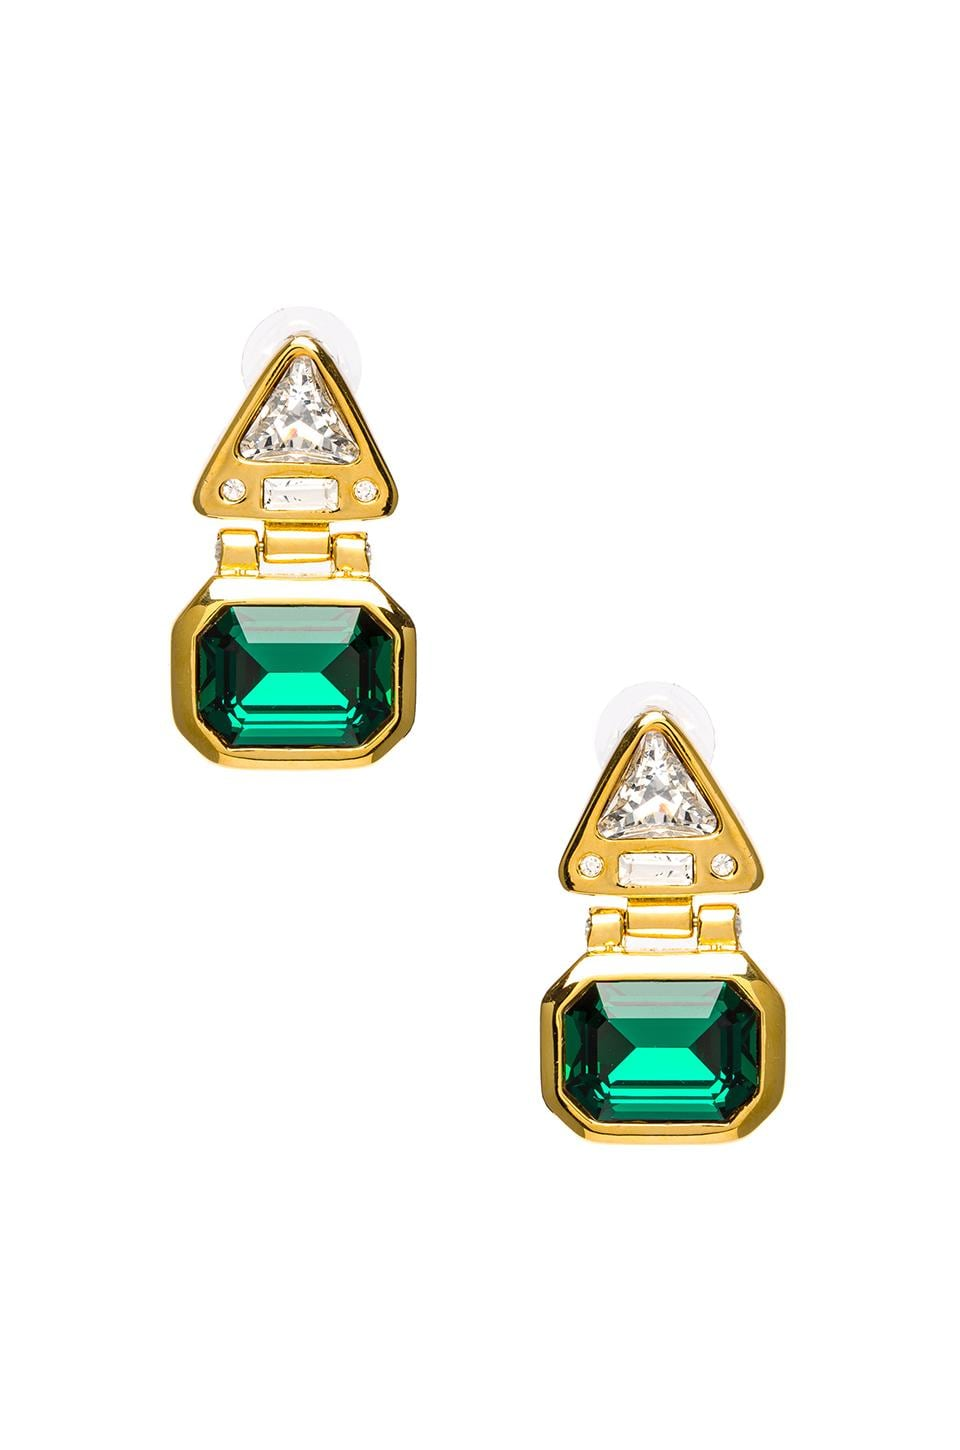 Kenneth Jay Lane Polished Gold and Crystal Triangle Top Pierced Earrings in Gold